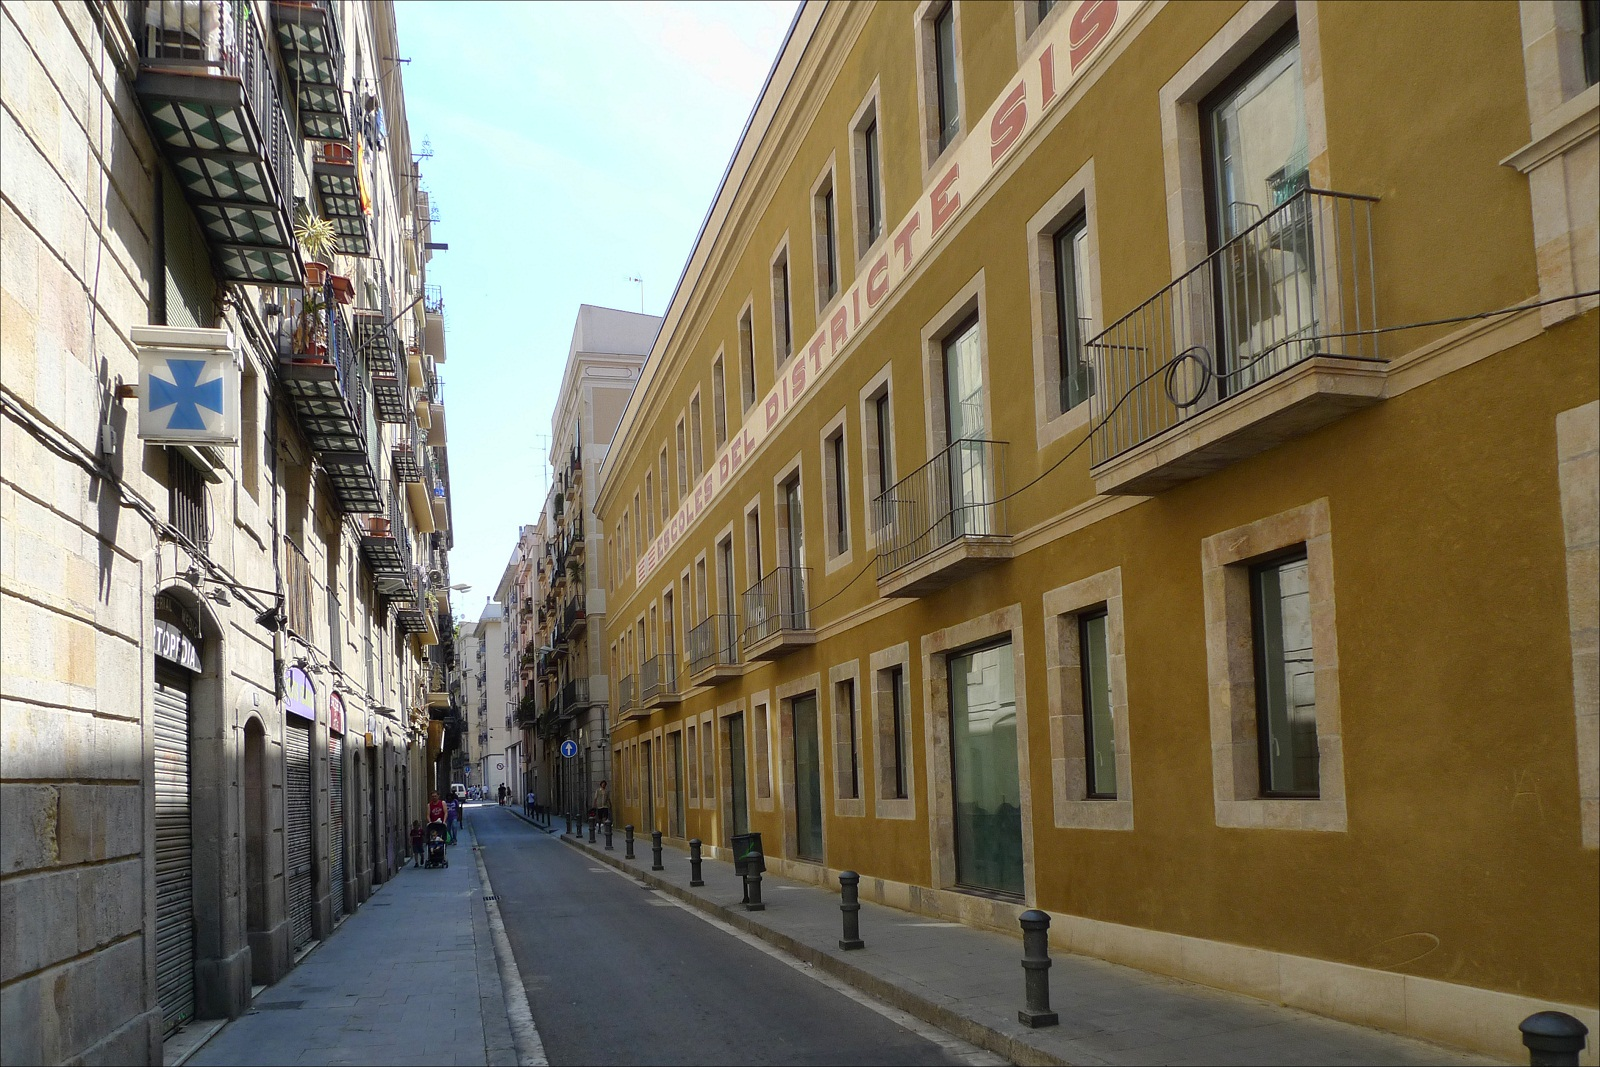 Barcelona Architecture, Spain, Streets 01